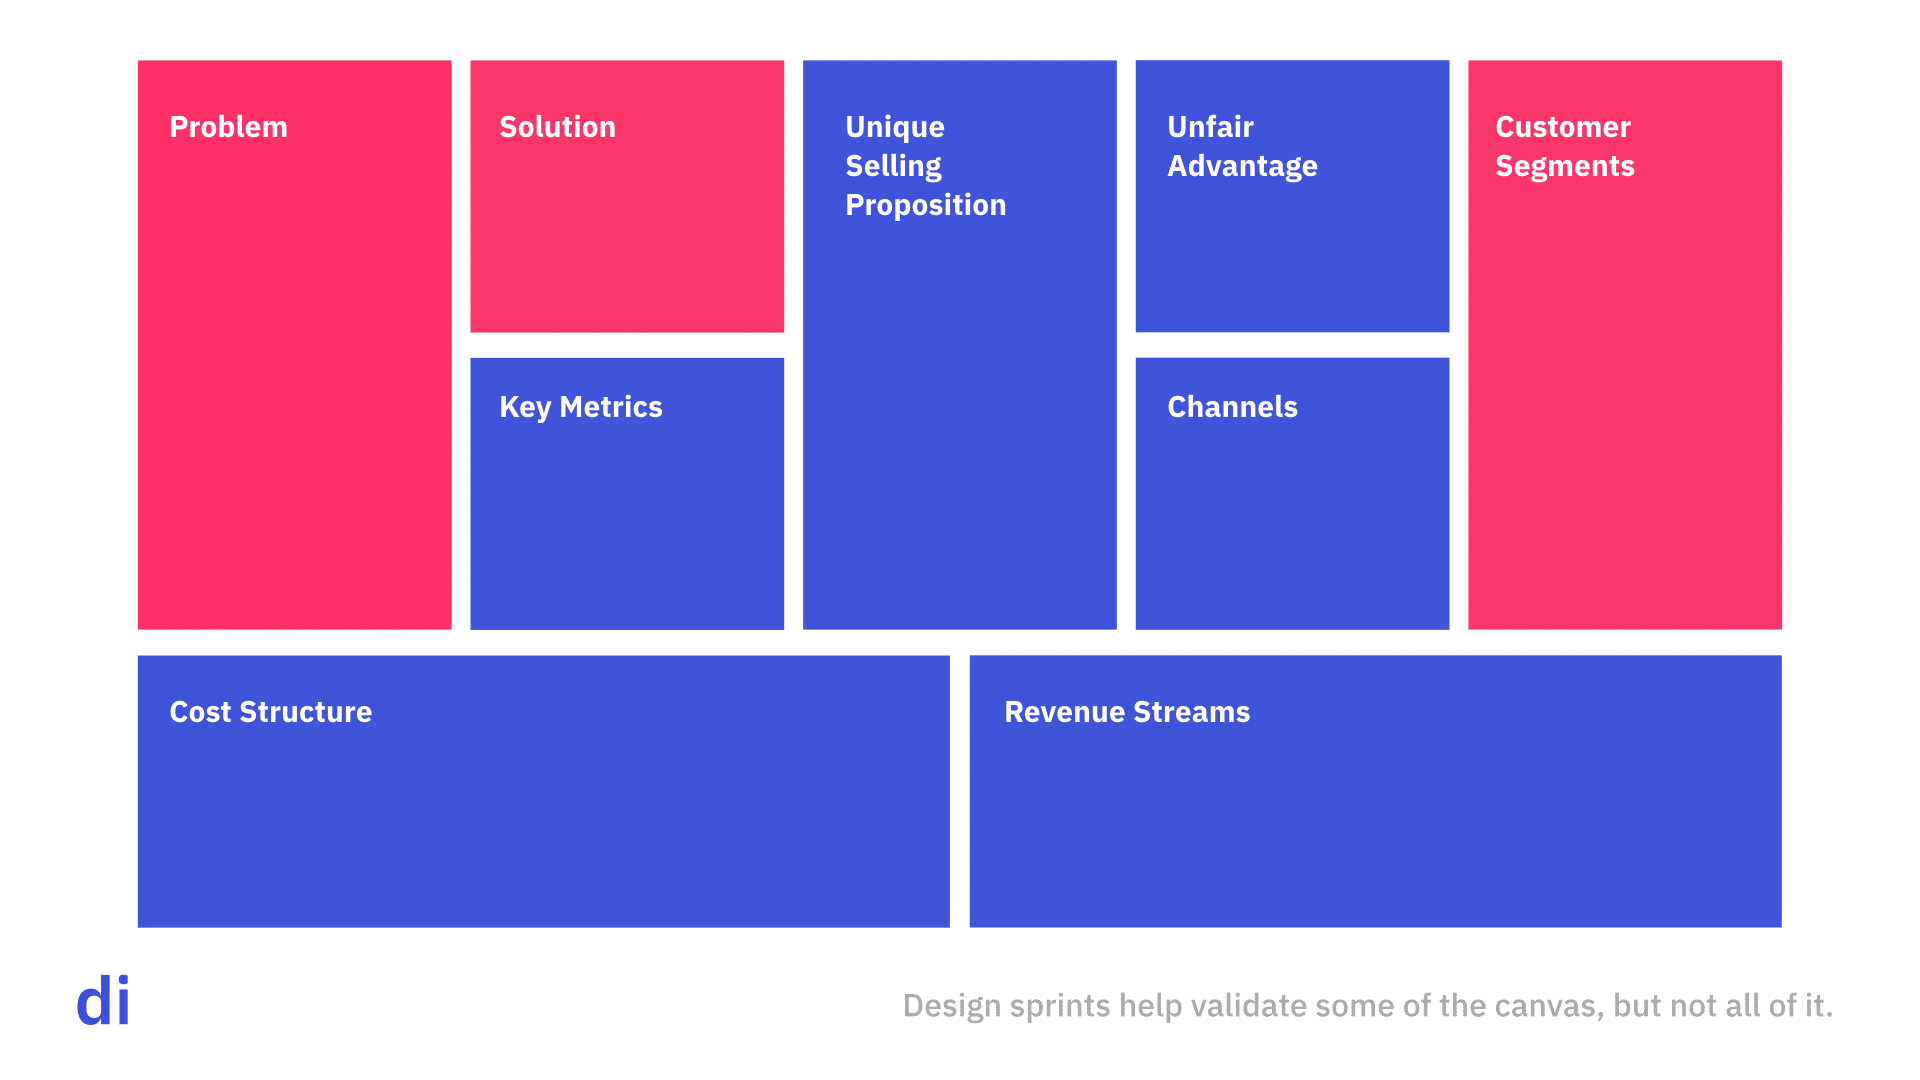 Design sprints validate part of the lean canvas, but not all of it.